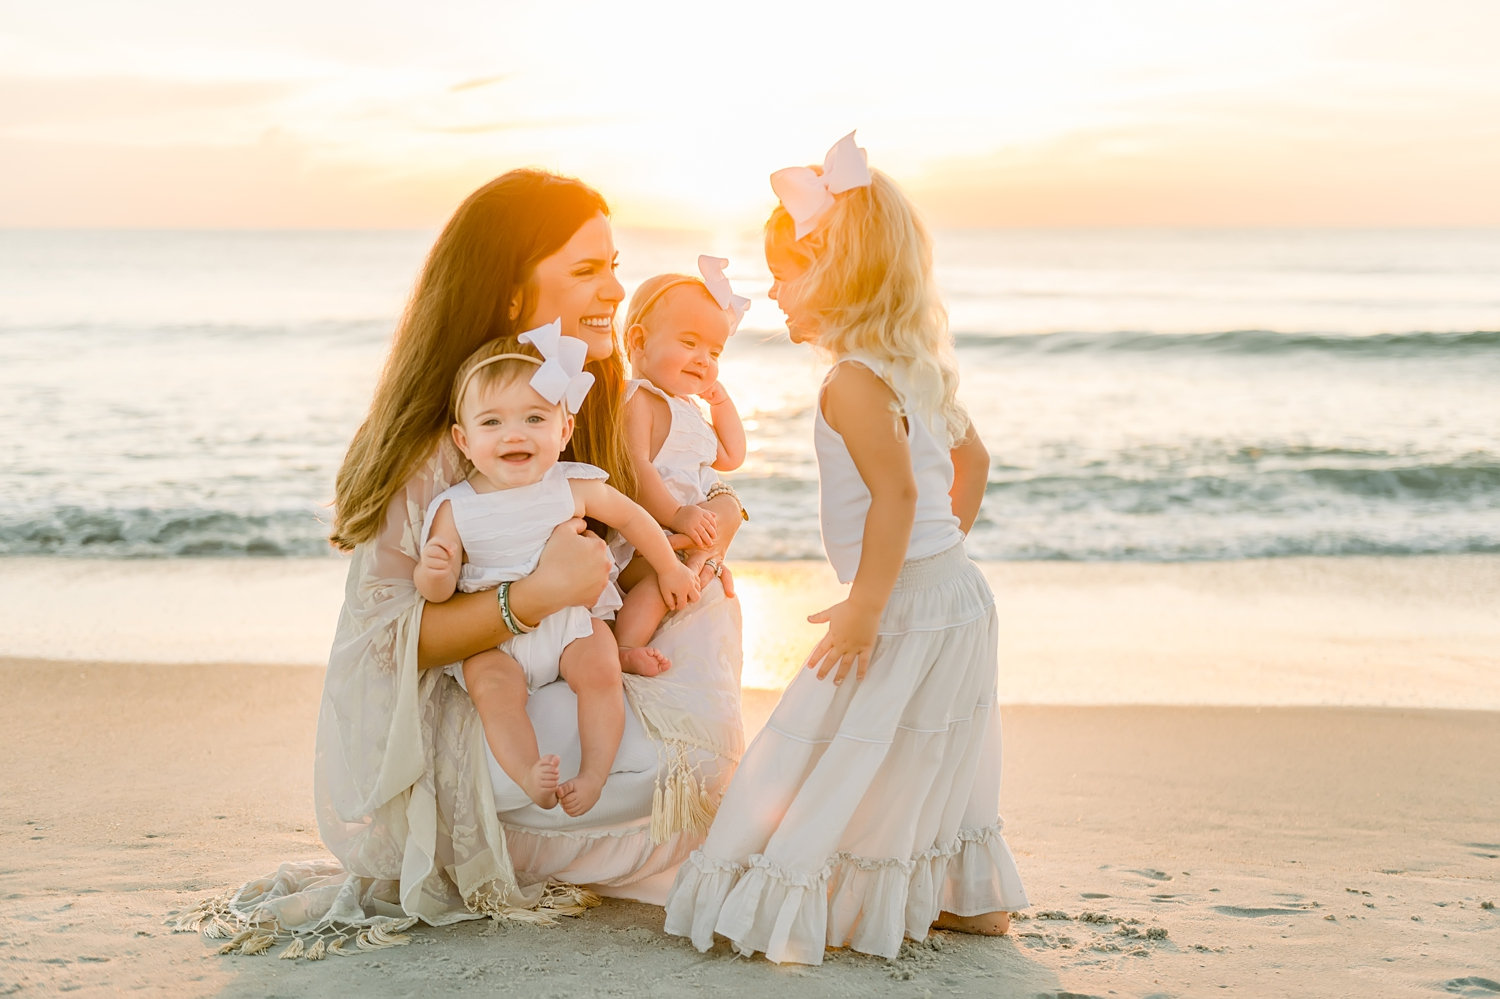 mother holding twin girls, little girl looking at her mom and sisters, sunrise